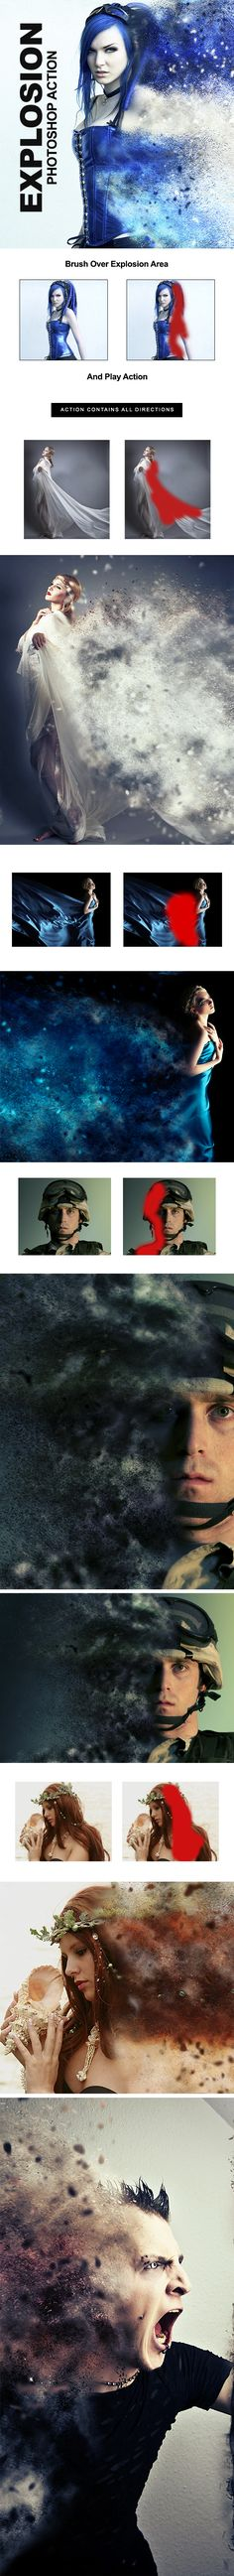 Explosion Action - Photo Effects Actions